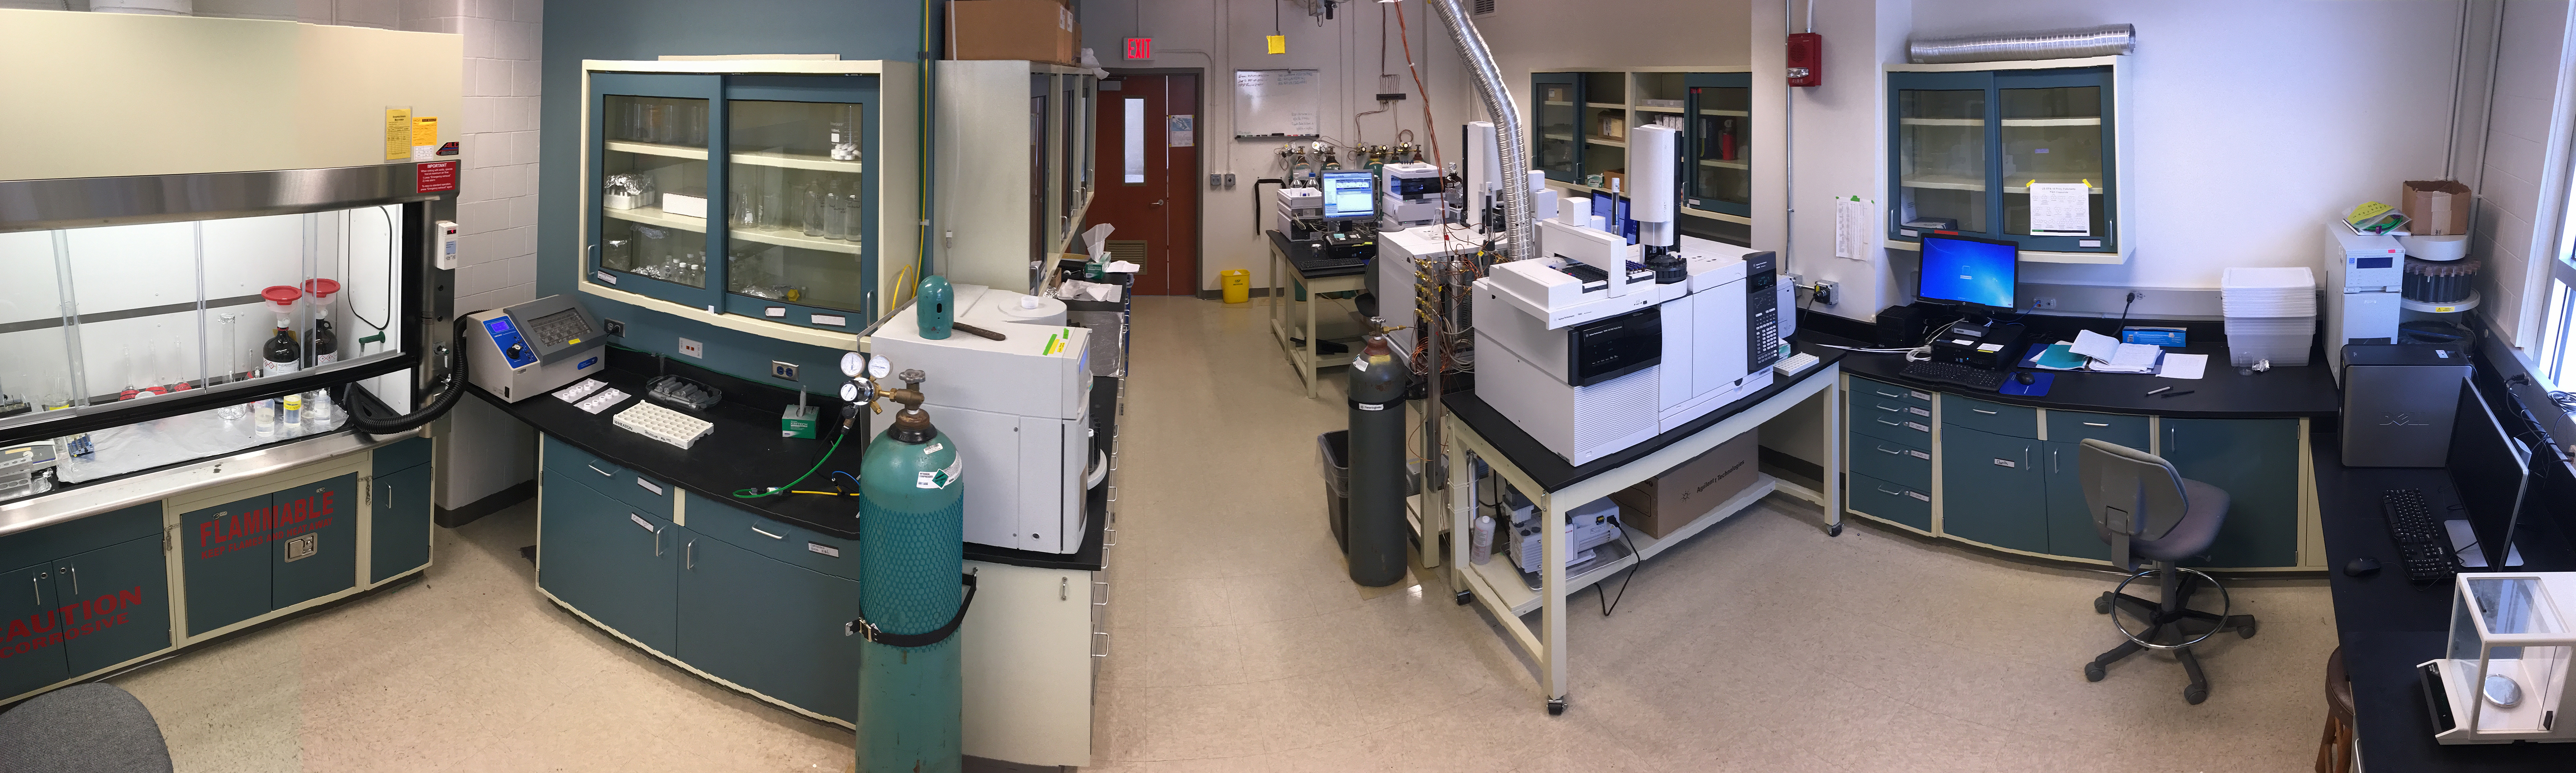 Gas Chromatography Mass Spectrometry Facility - USF College of Marine Science